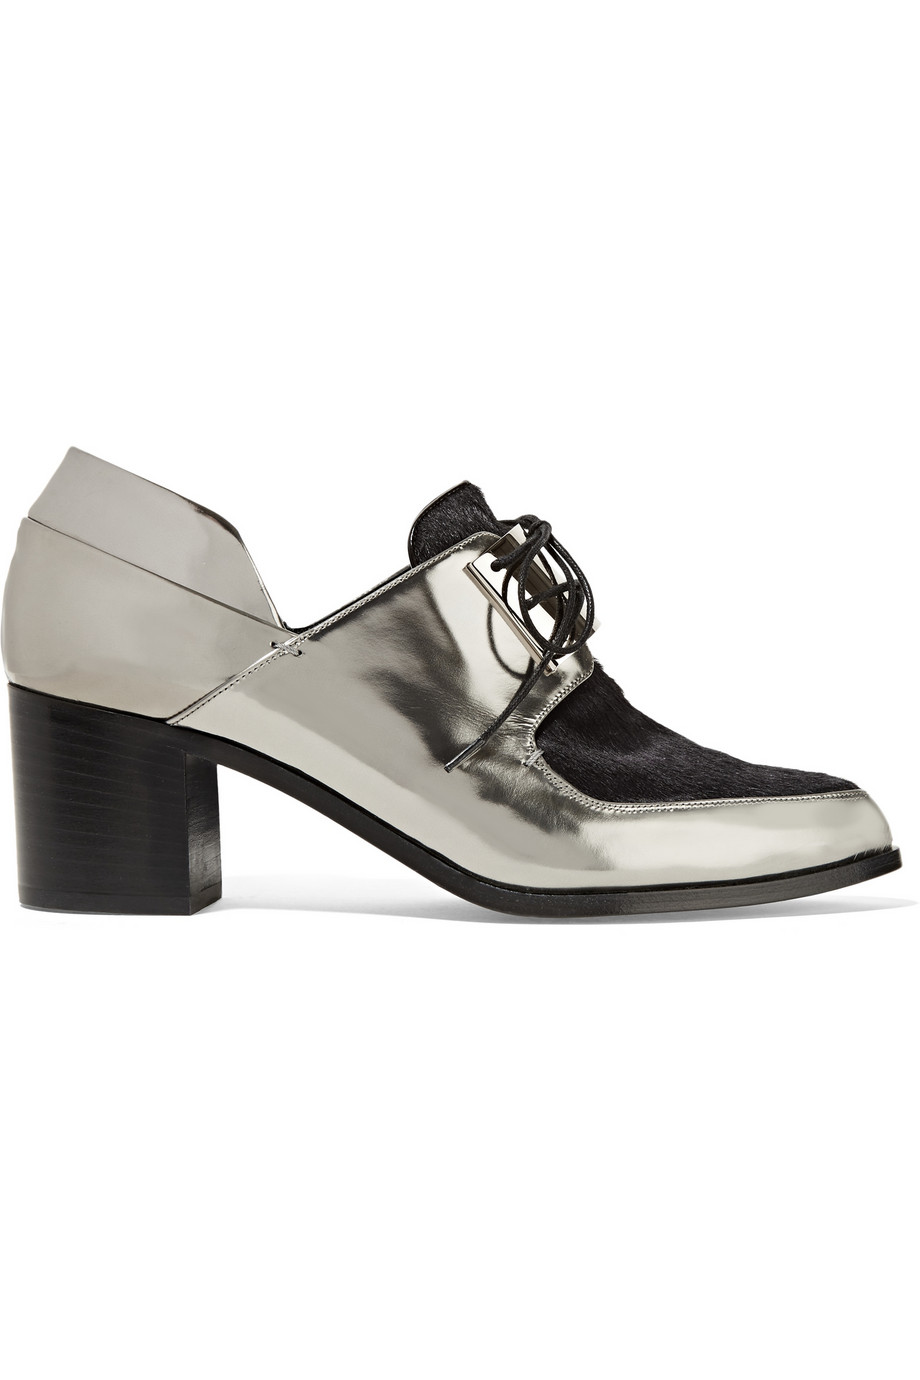 Jason Wu Paneled Metallic Leather & Pony Brogues. The Outnet. Was: $925 Now: $370.